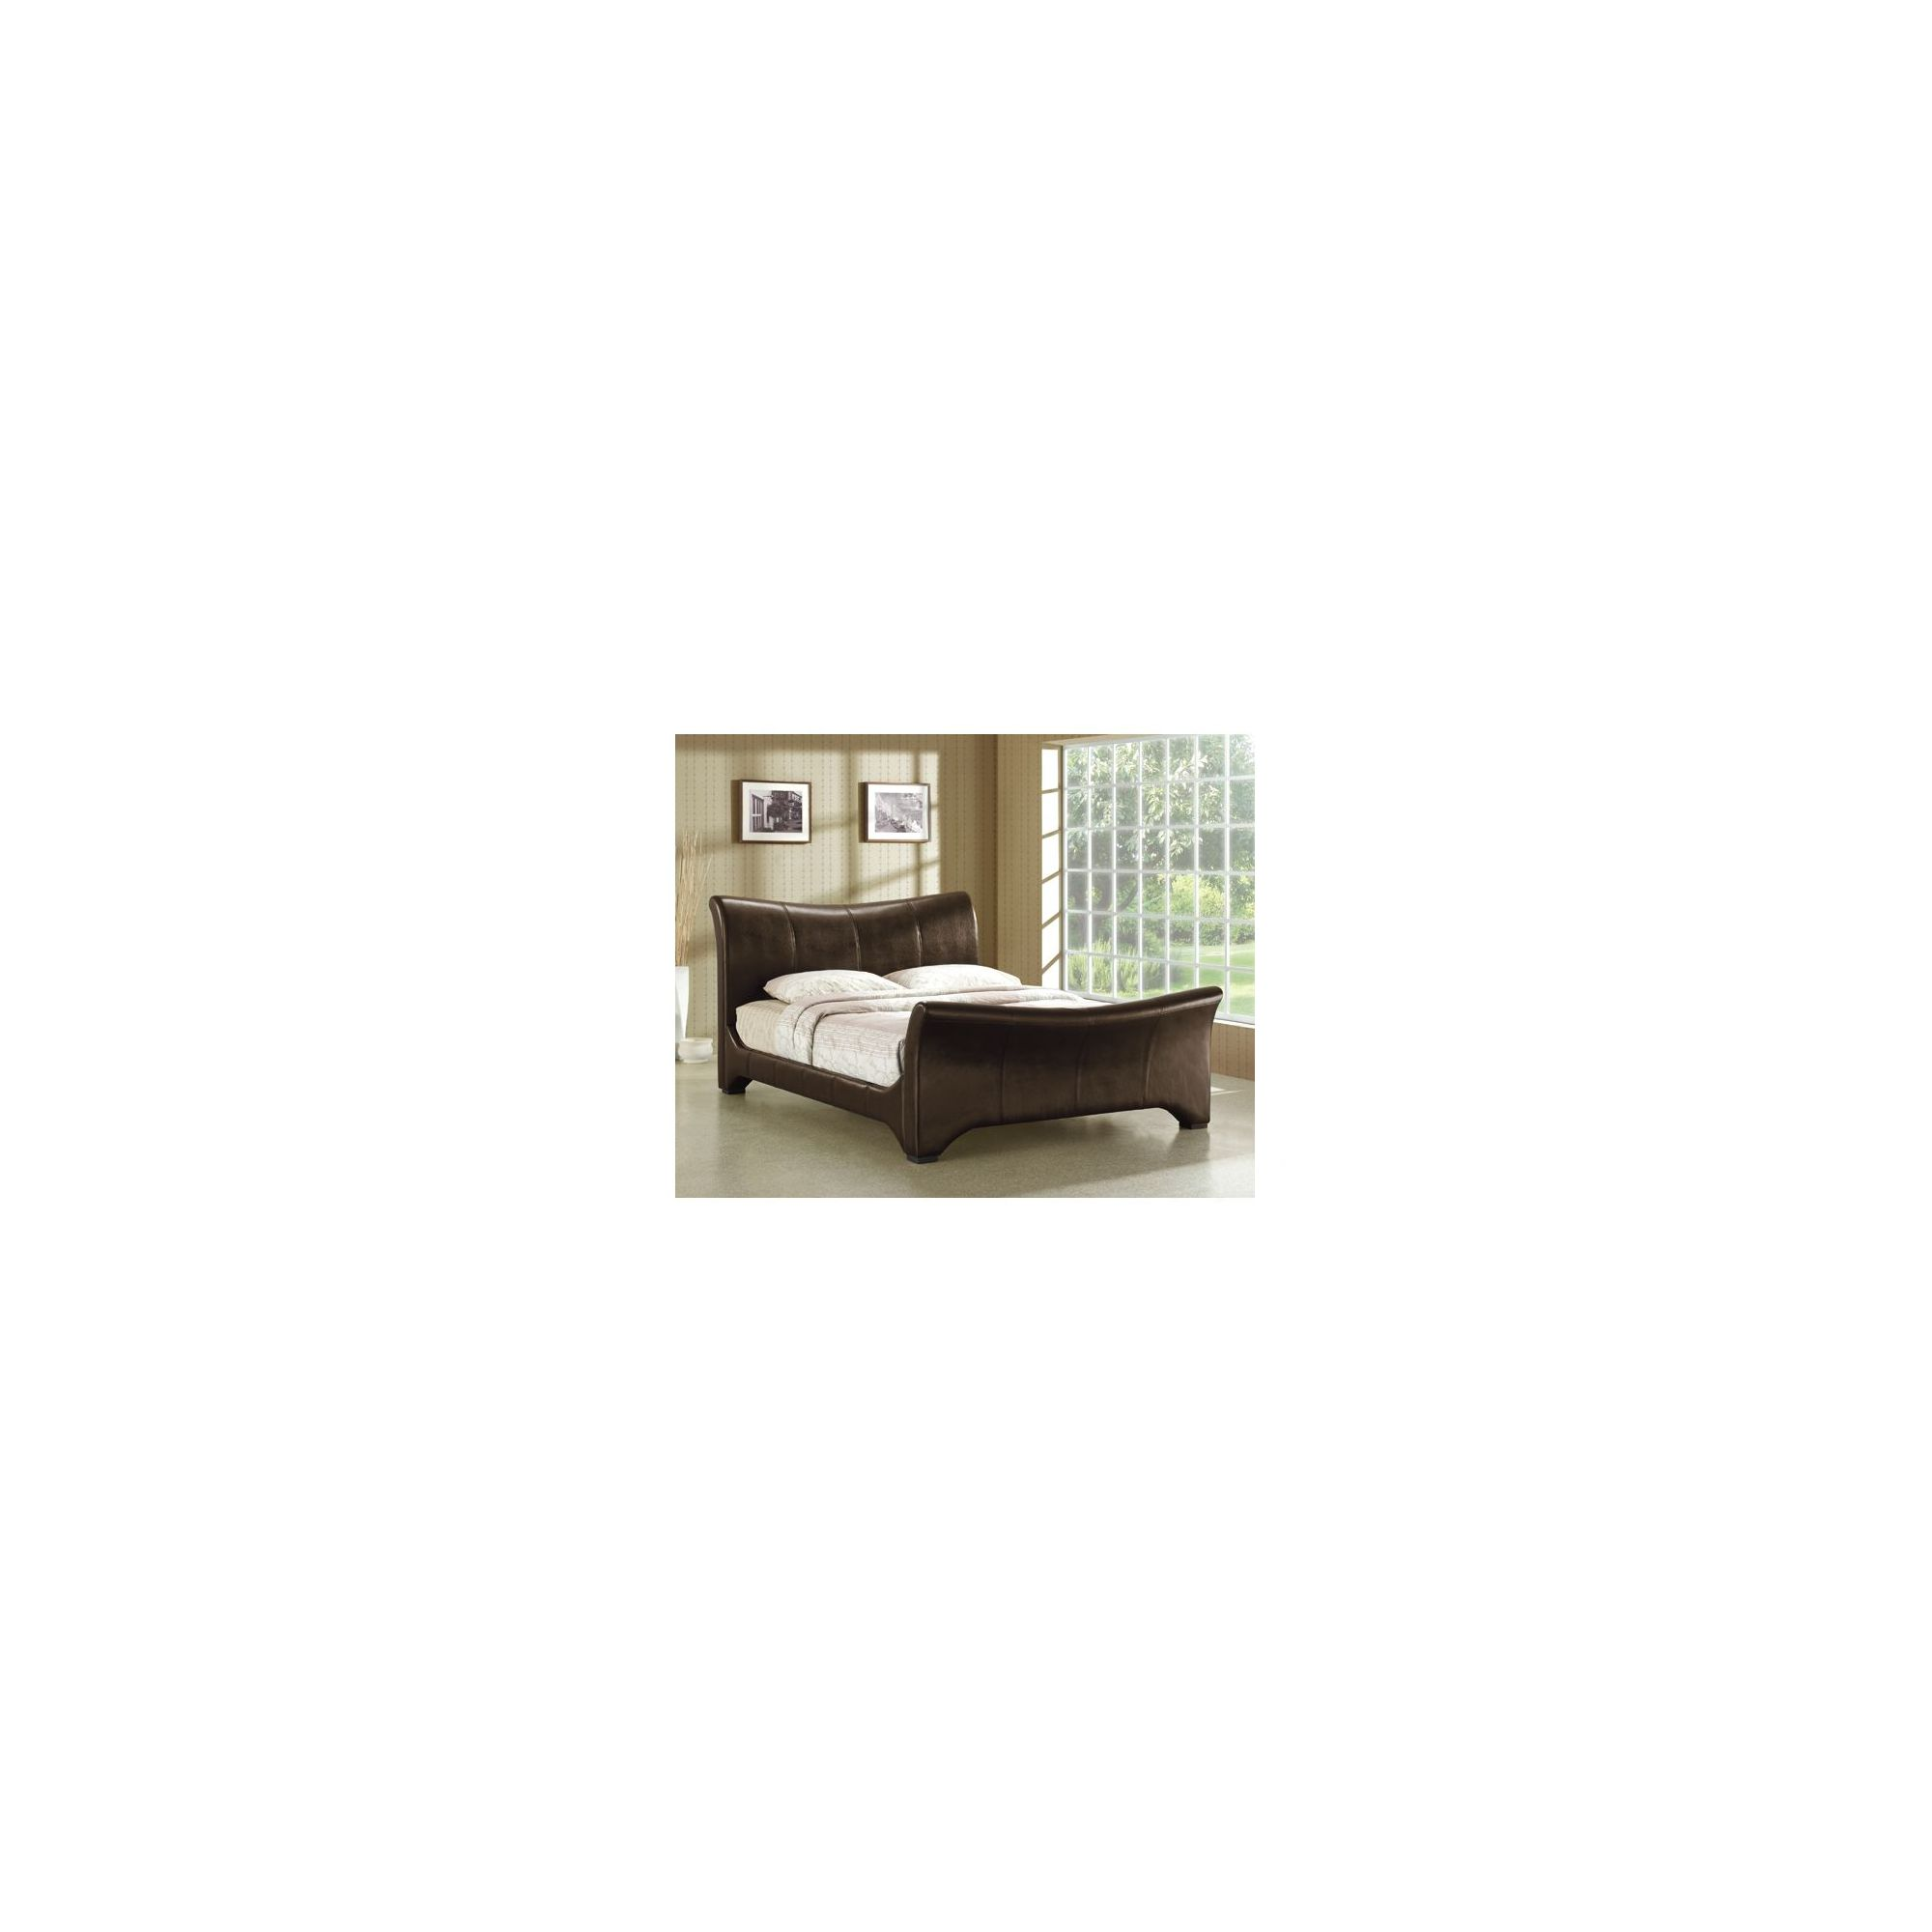 Altruna Wave Faux Leather Bed Frame - Double - Brown at Tesco Direct